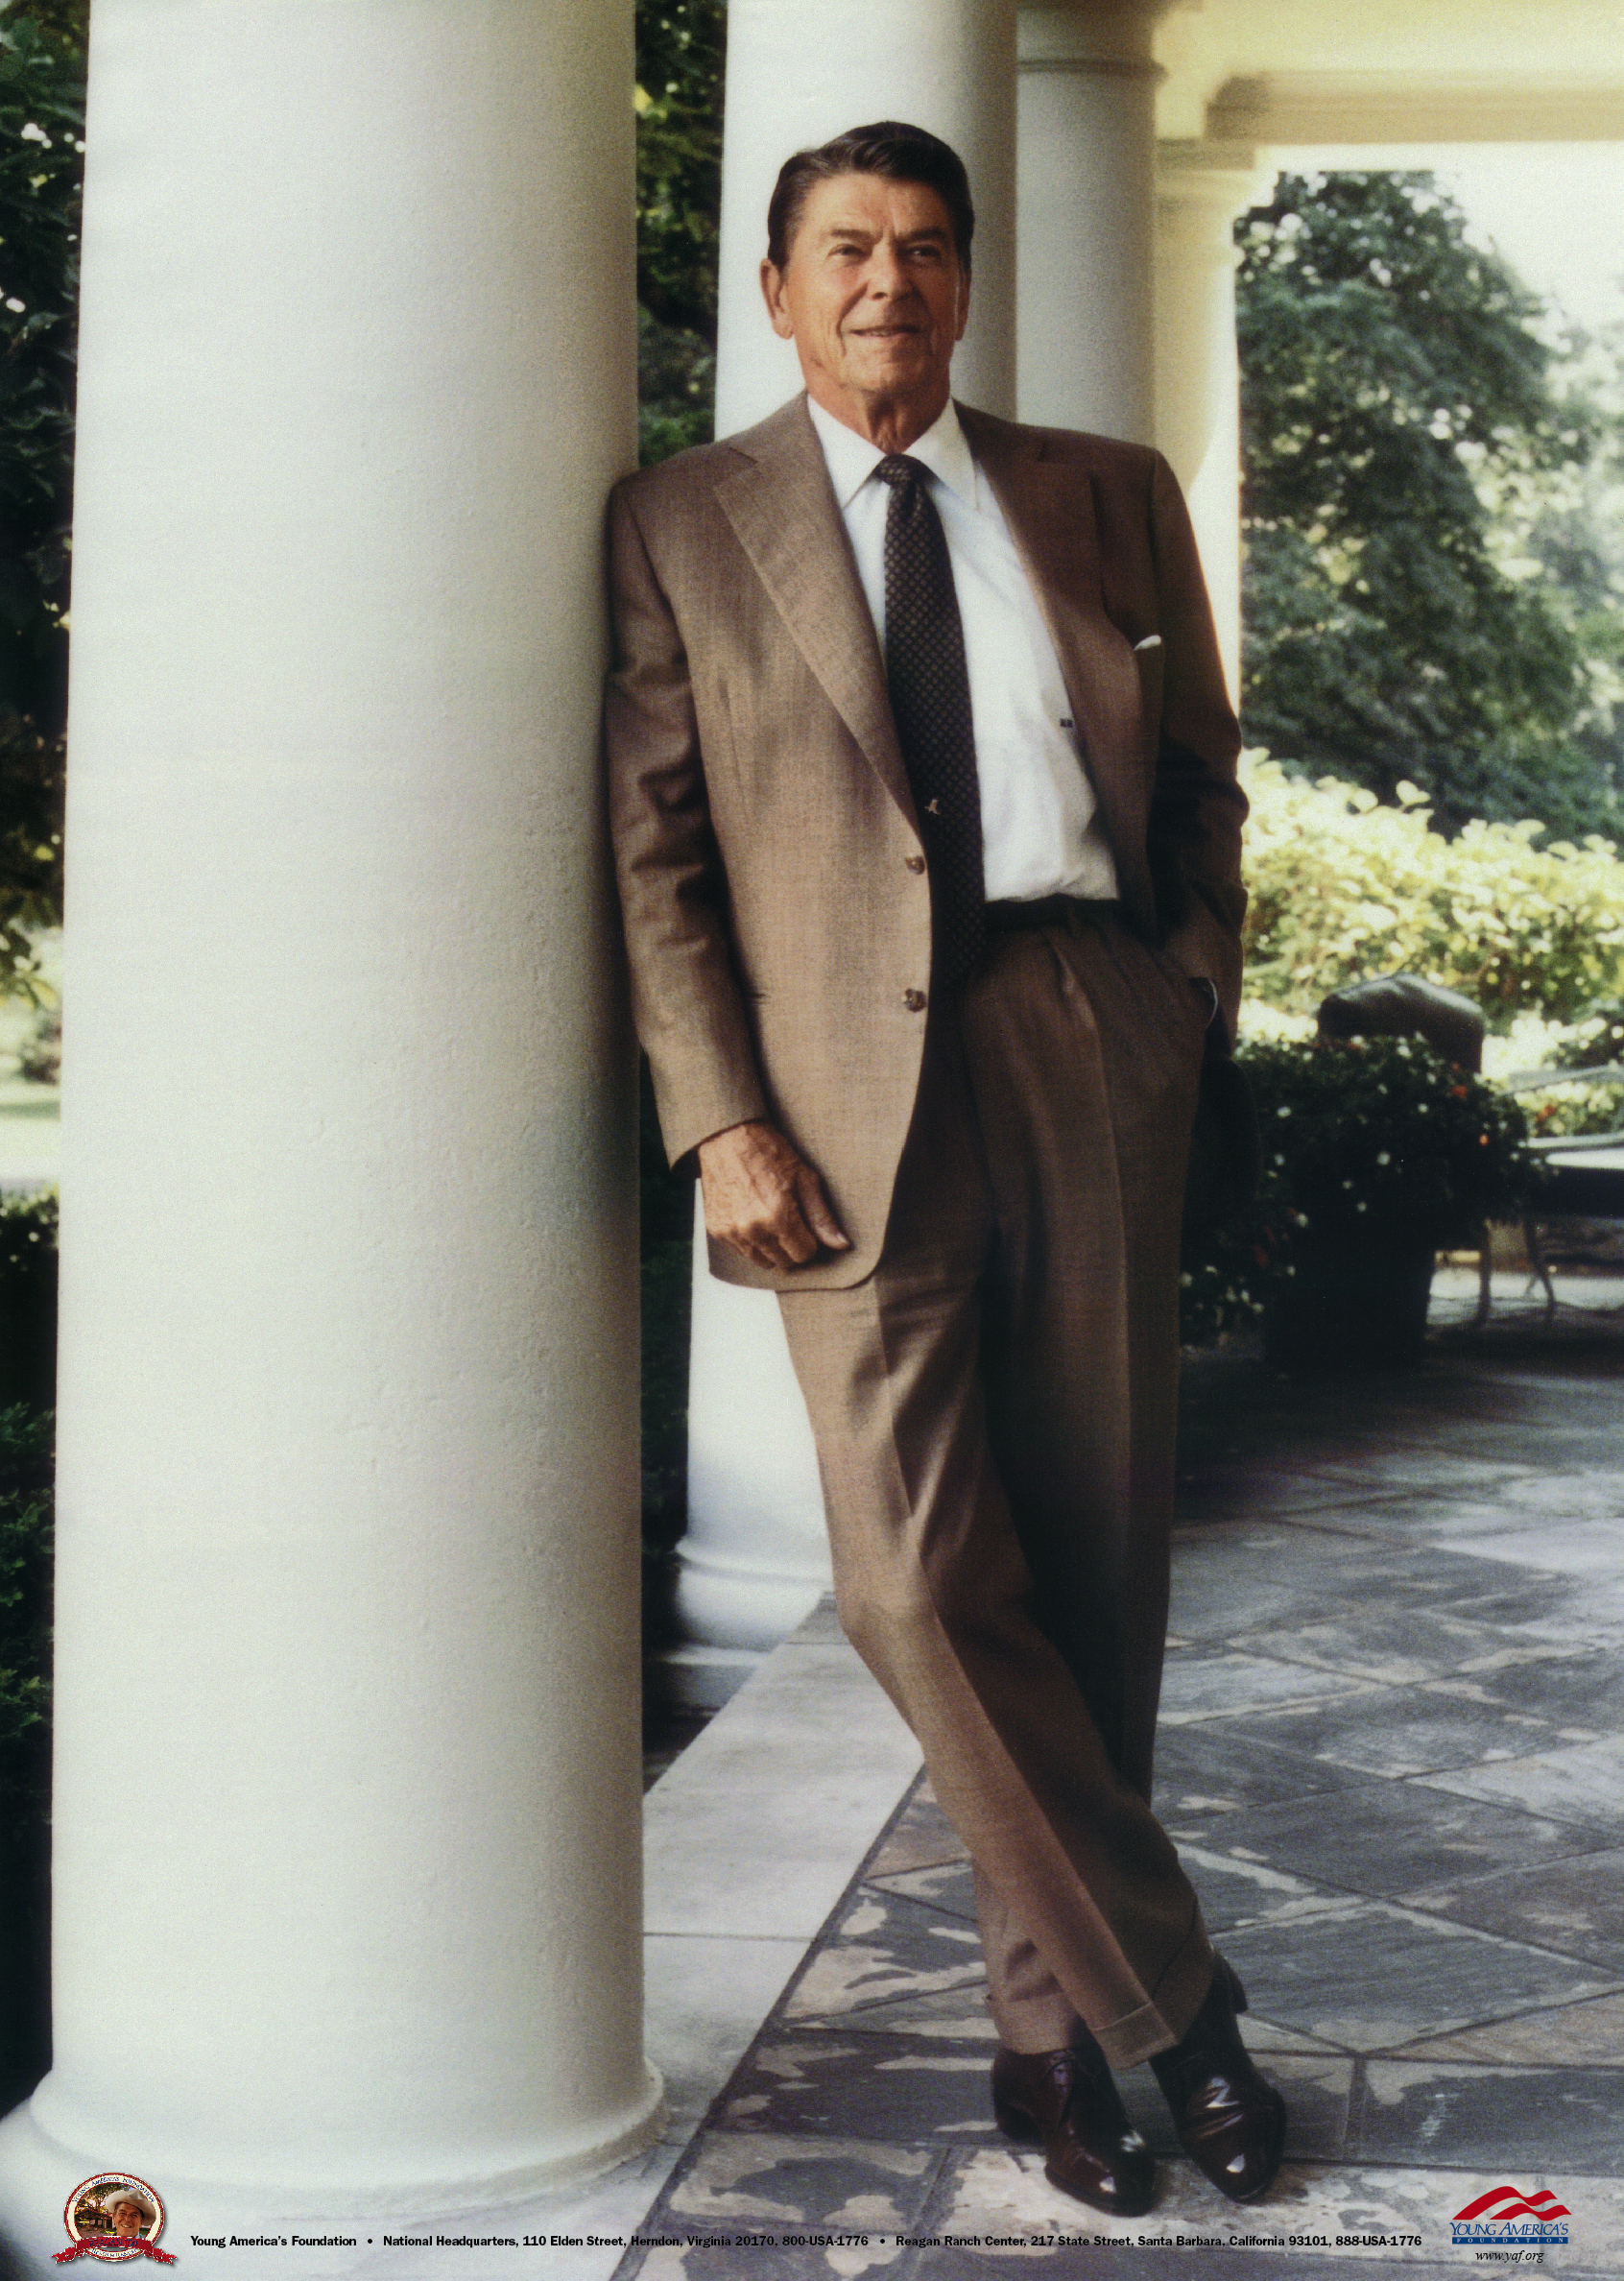 Reagan Brown Suit at White House Poster - Young America's Foundation